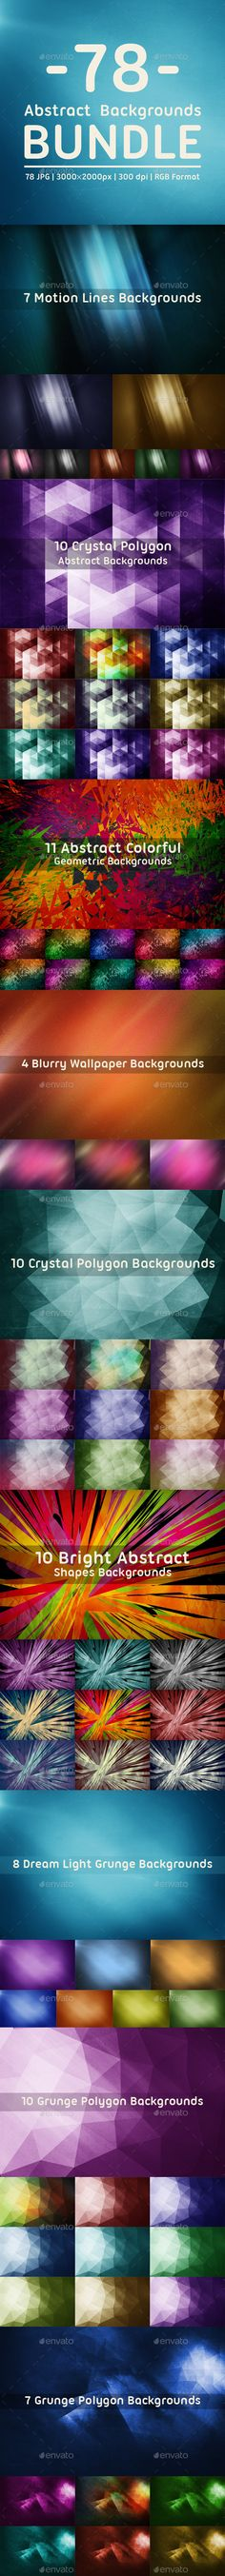 This pack contains 78 jpg abstract backgrounds for your projects. You can use this backdrops in your own design, in Web Sites, We